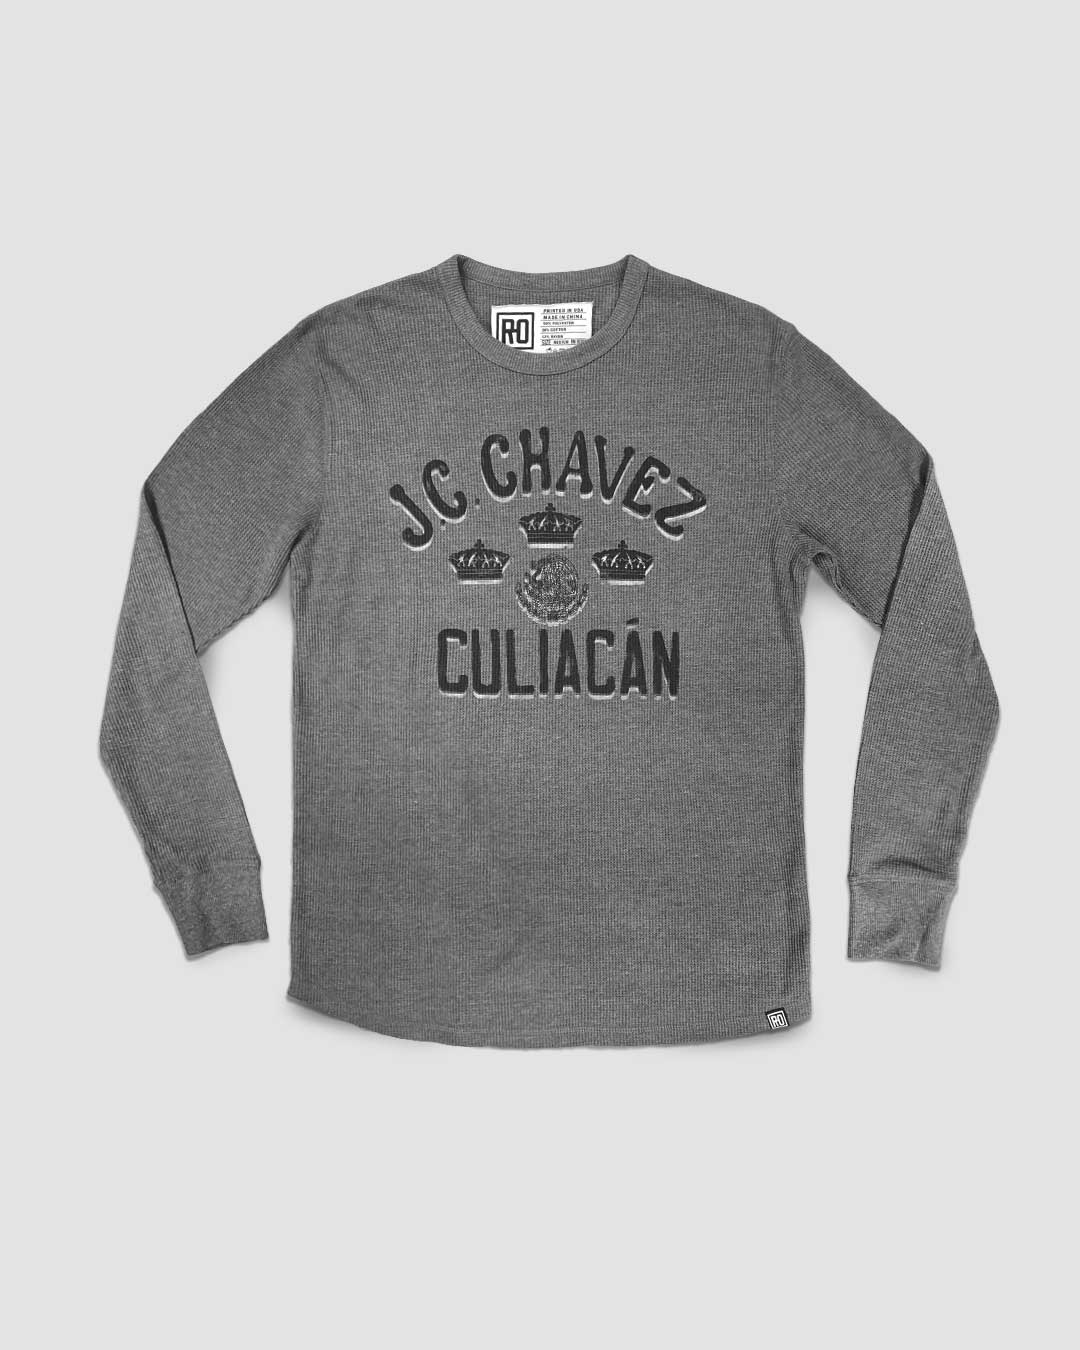 J.C. Chavez Culiacan Thermal - Copasetic Clothing Ltd. dba Roots of Fight